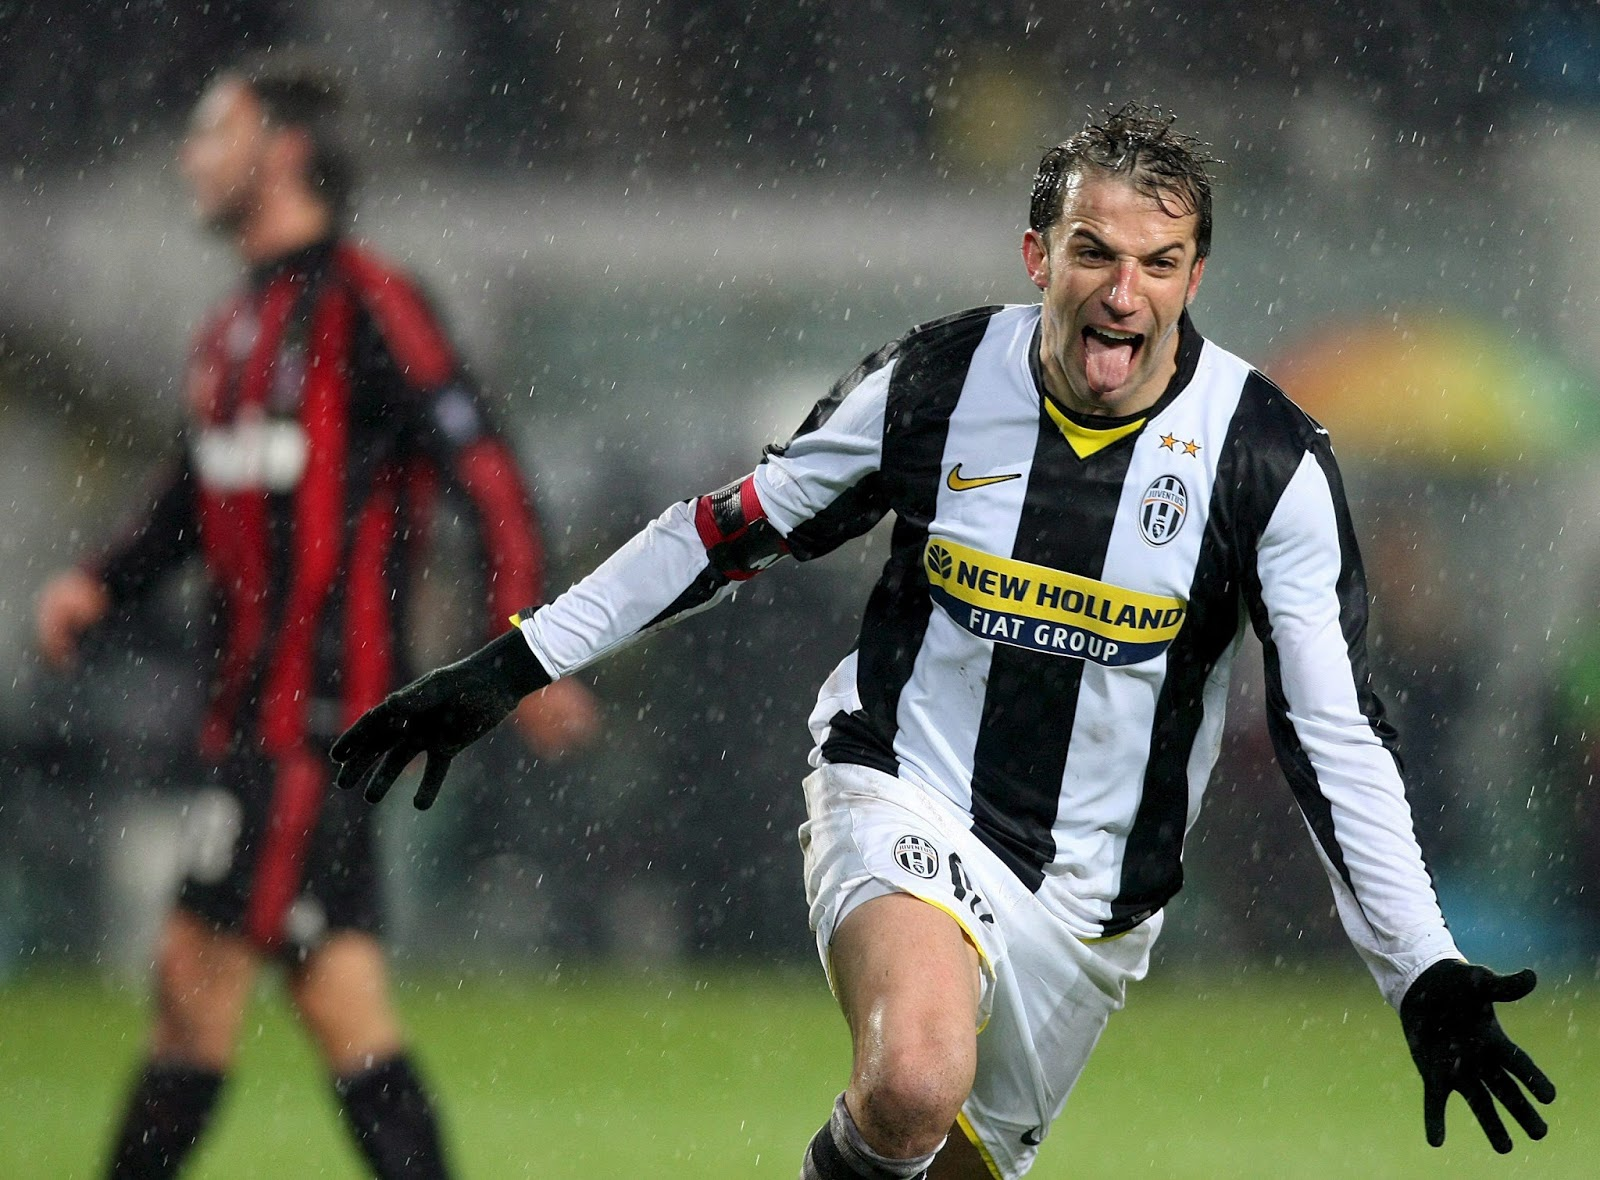 Soccer football or whatever Juventus All time Team